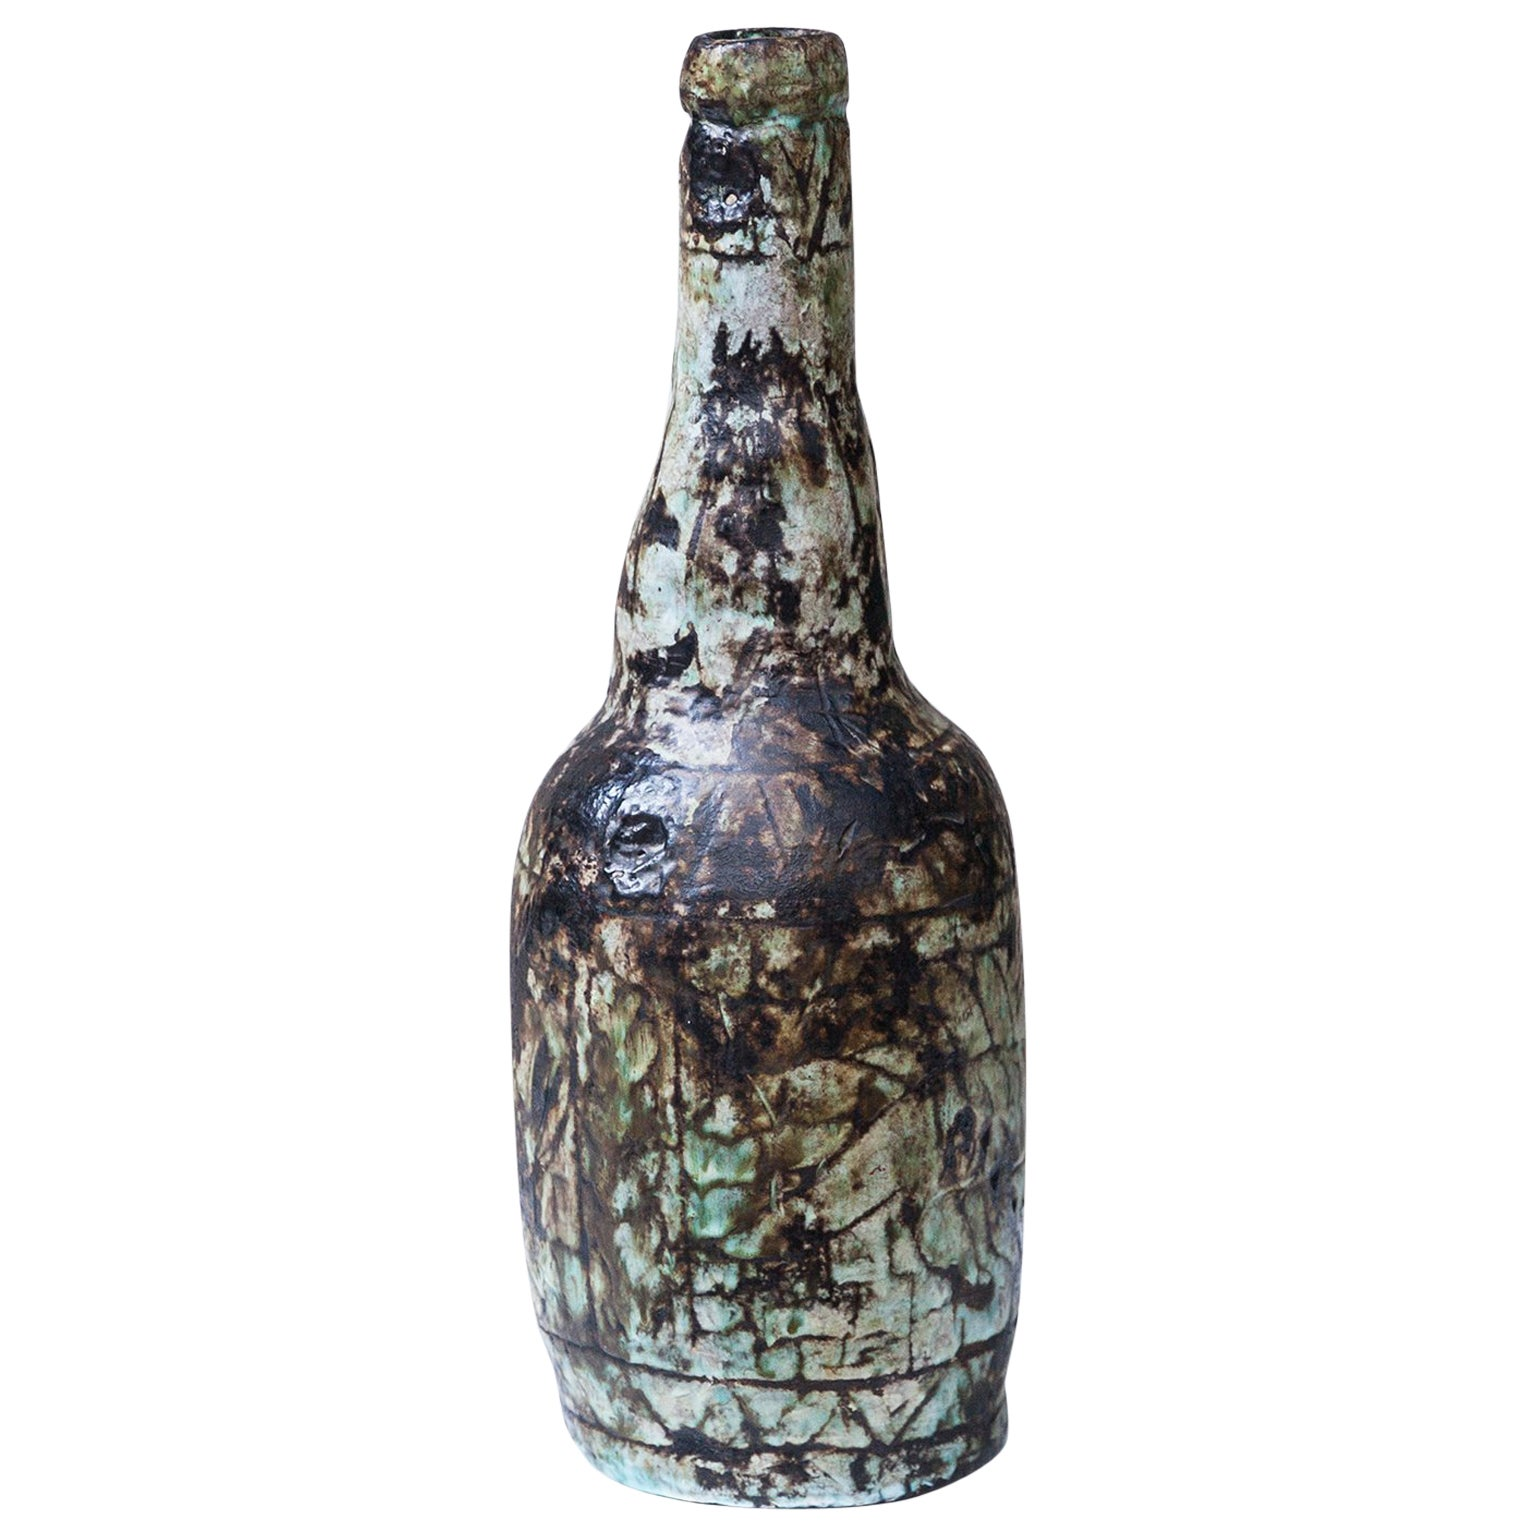 Huge Art Pottery Jerome Massier Vallauris Vase, 1960s